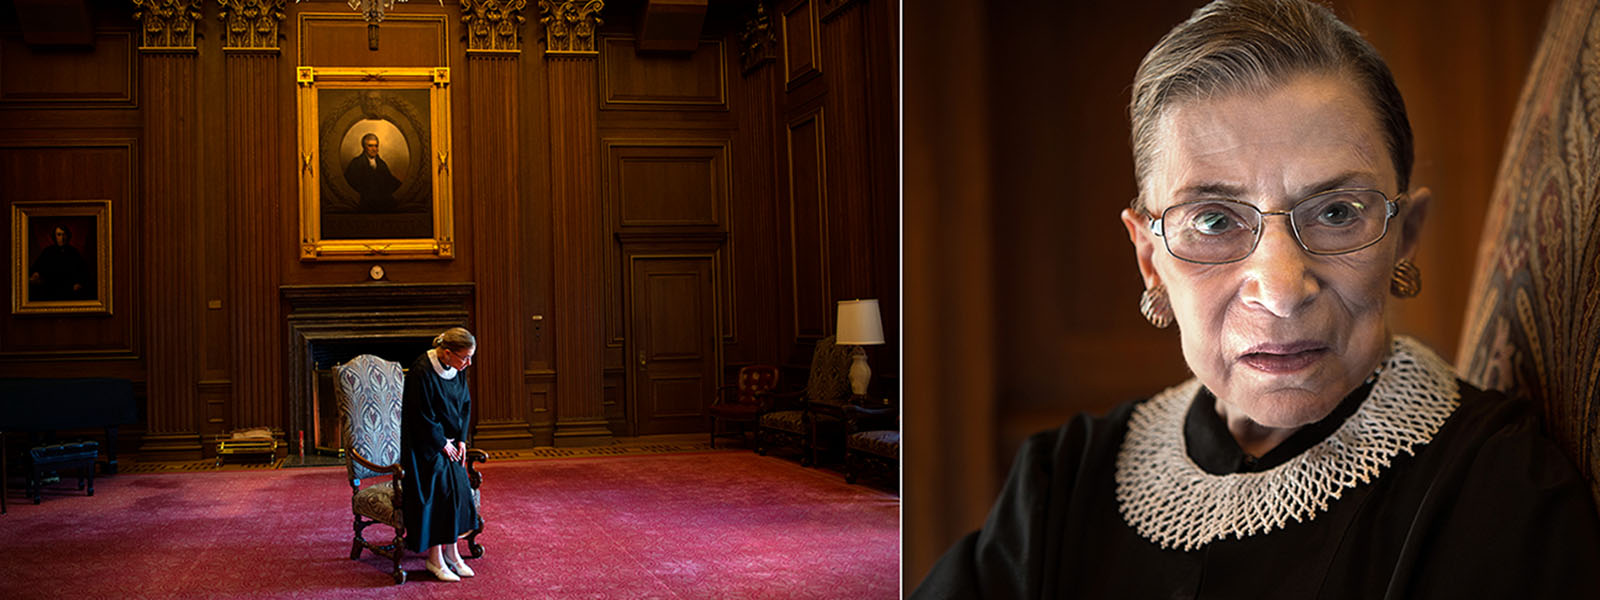 Justice Ruth Bader Ginsburg © 2013 Nikki Kahn/The Washington PostALL RIGHTS RESERVED